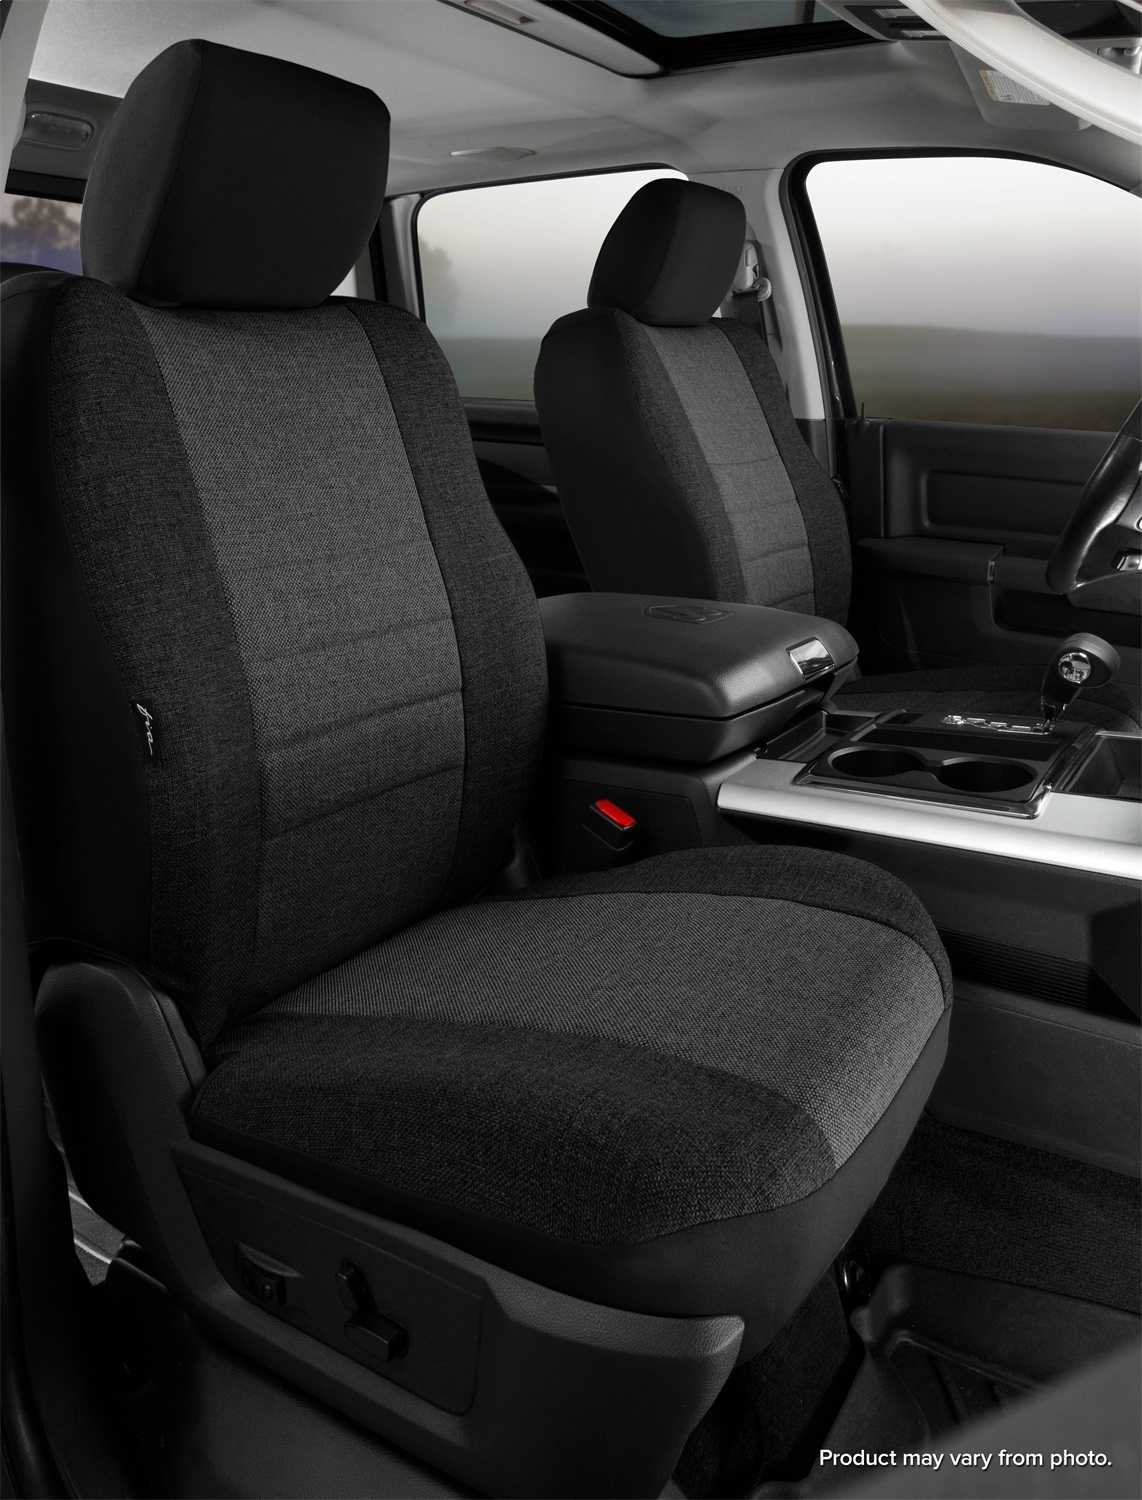 Fia OE39-2 CHARC  Custom Fit Front Seat Cover Bench Seat Charcoal Tweed,